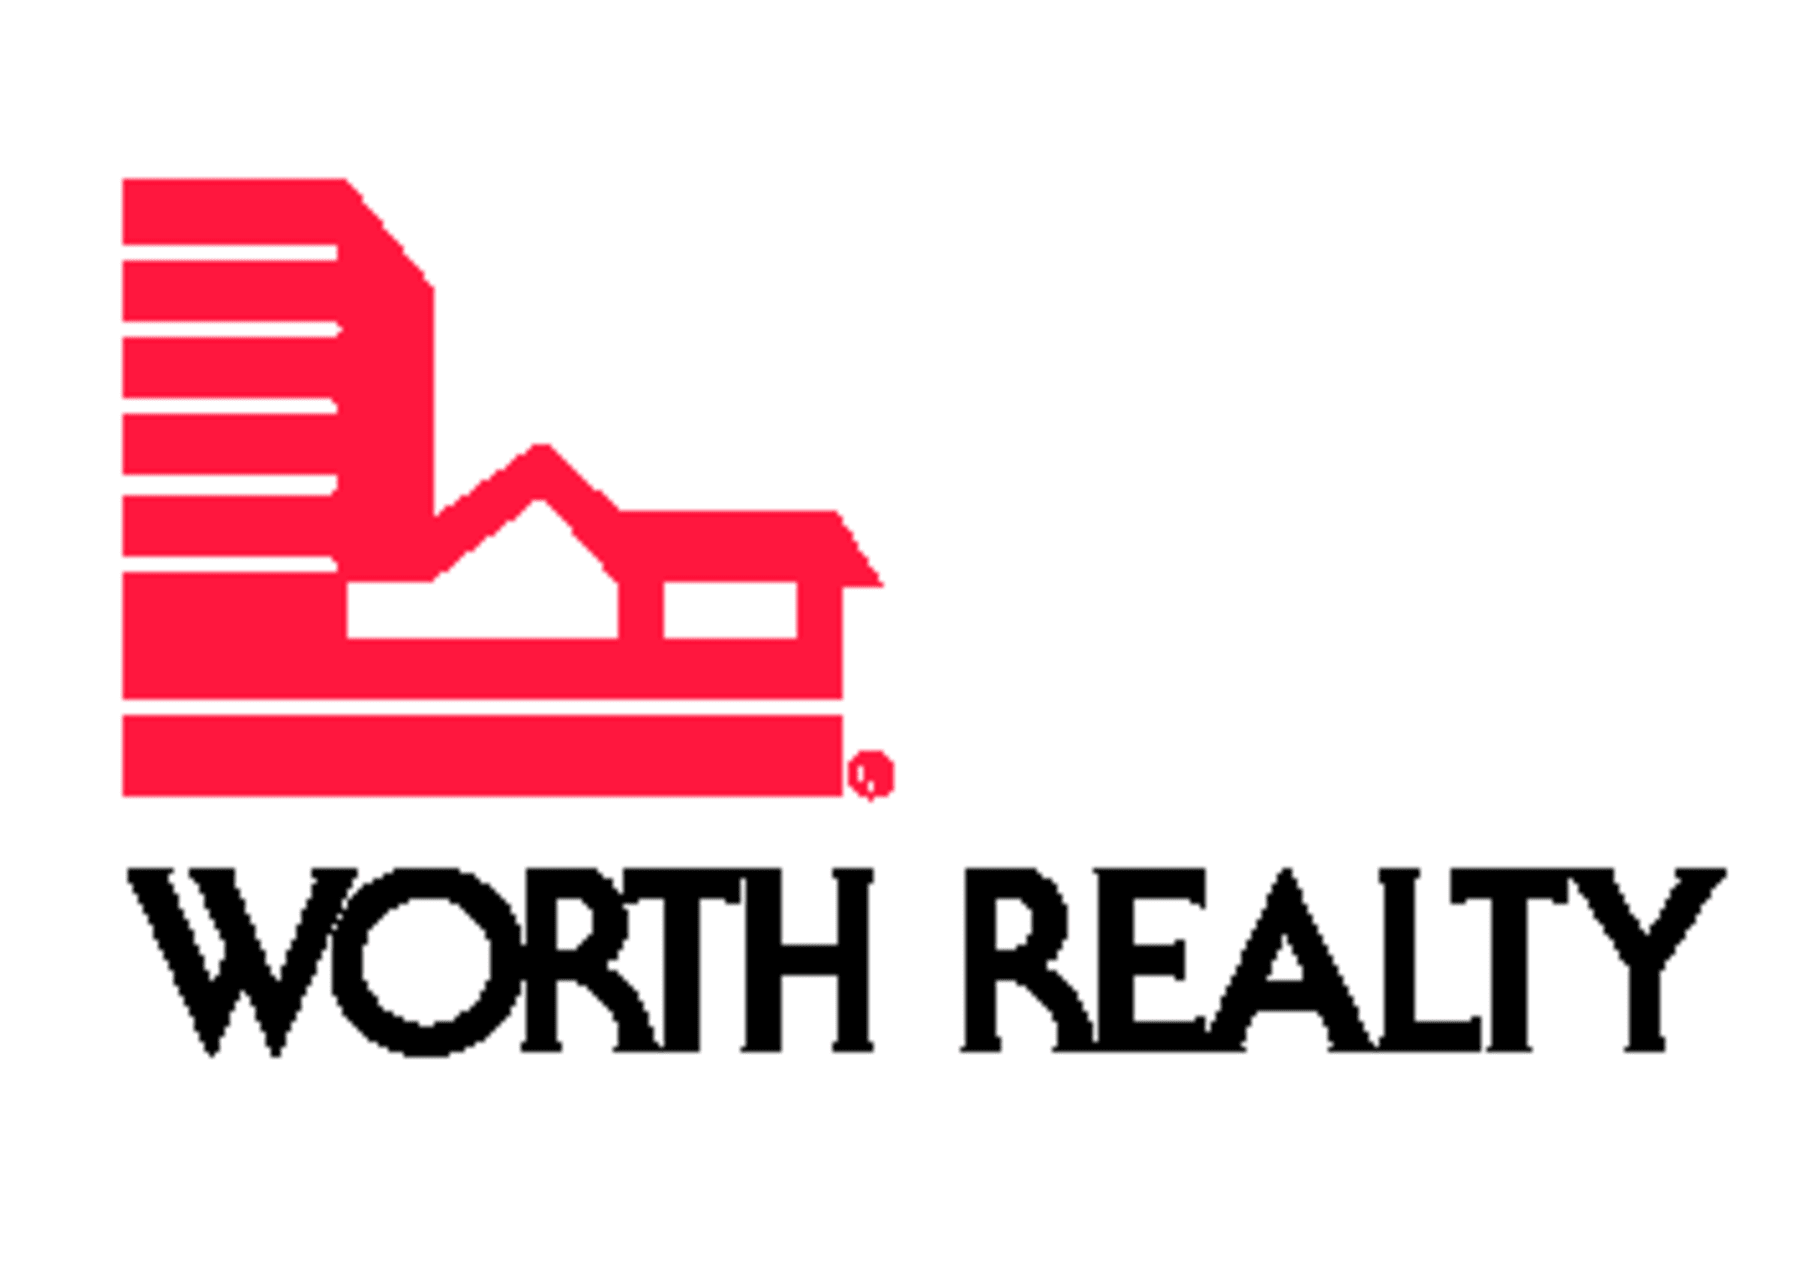 Worth Realty